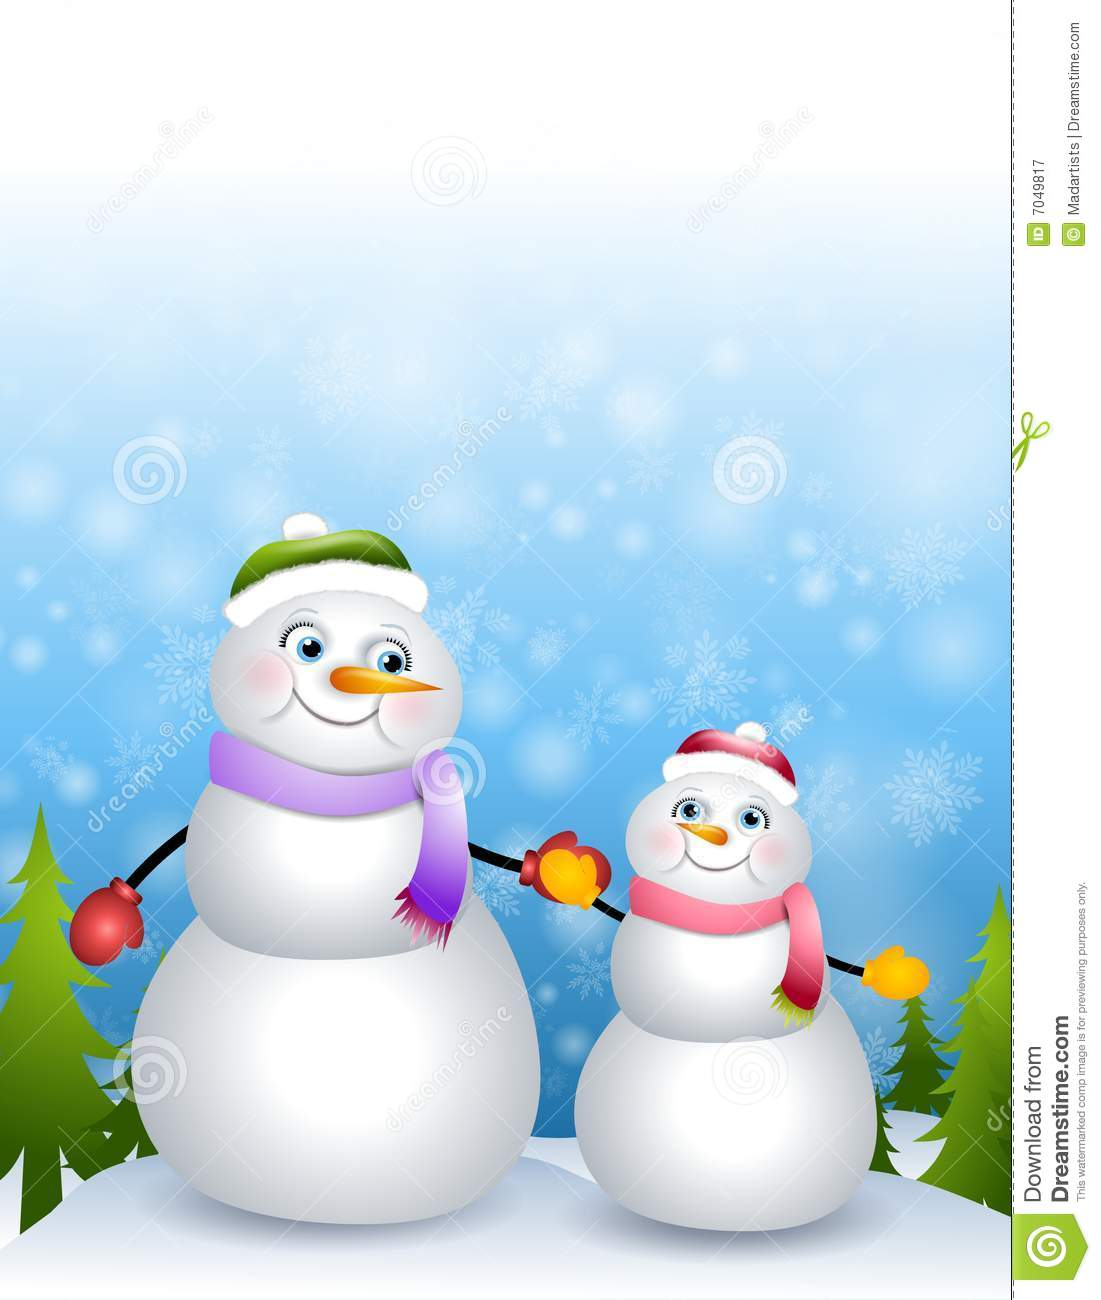 Clip Art Illustration Featuring A Mother And Daughter Snowman Theme